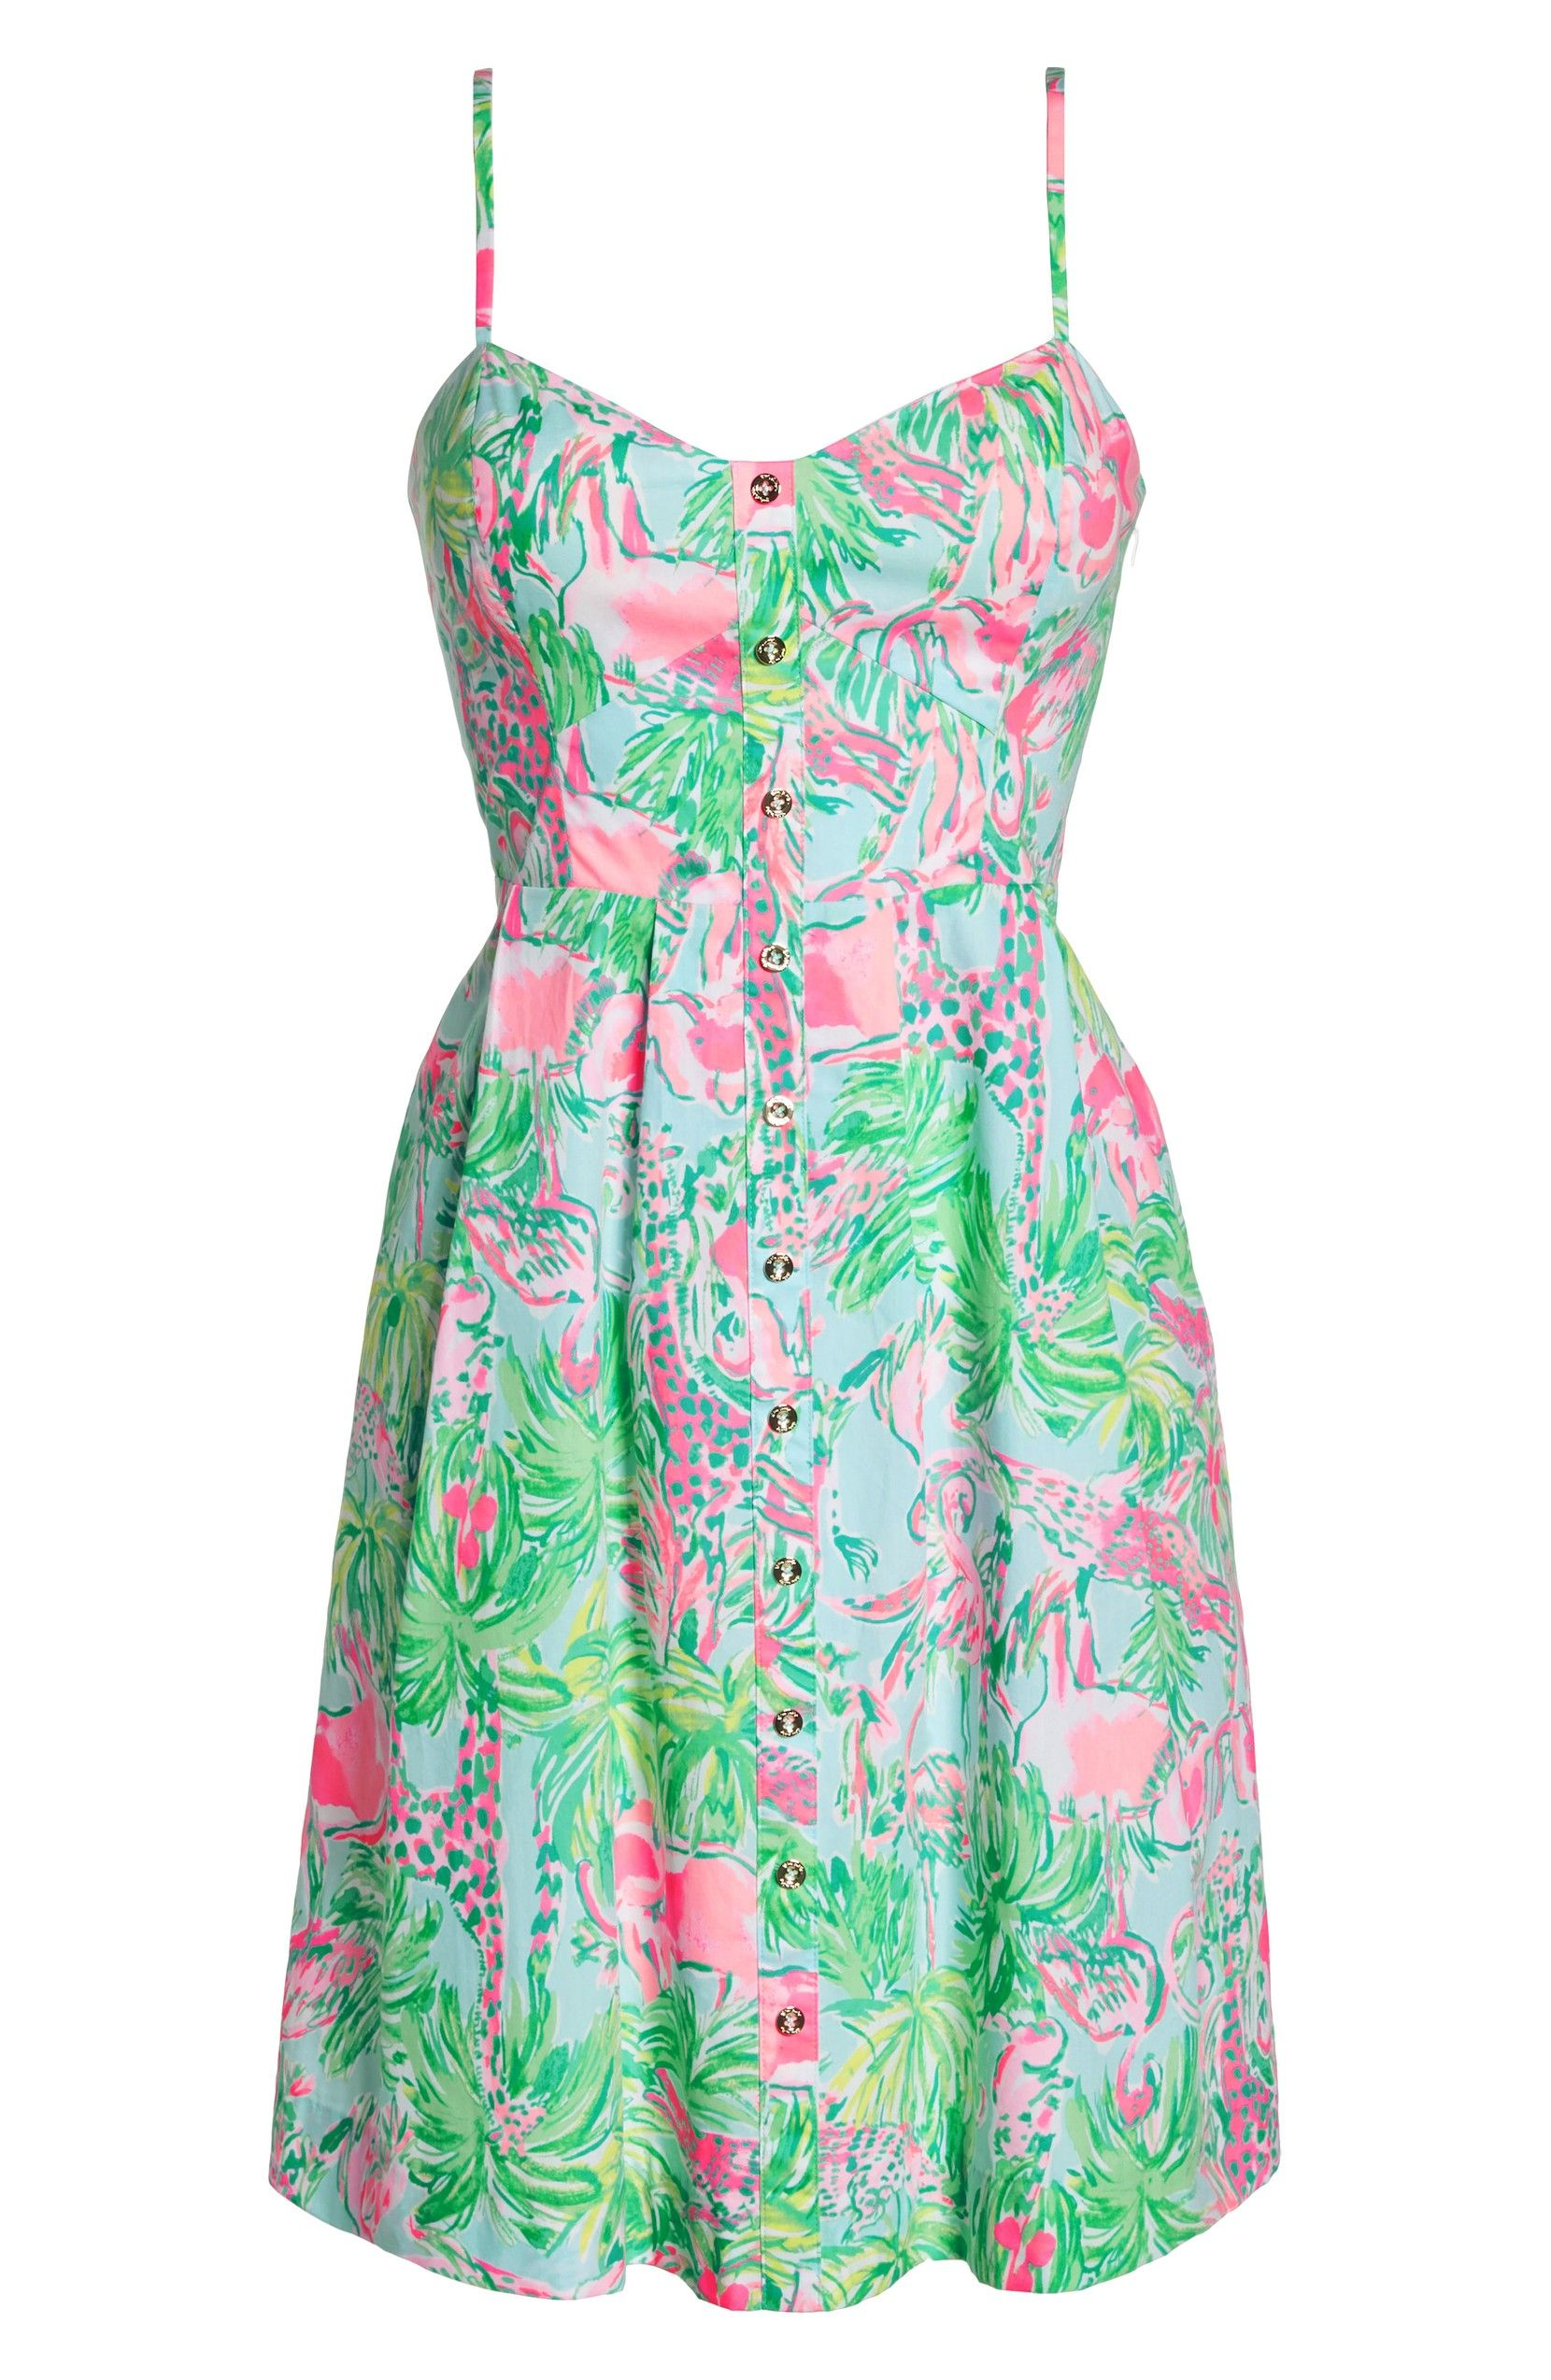 cdc592c9f6b Lilly Pulitzer Easton Sundress - Seasalt Blue On Parade